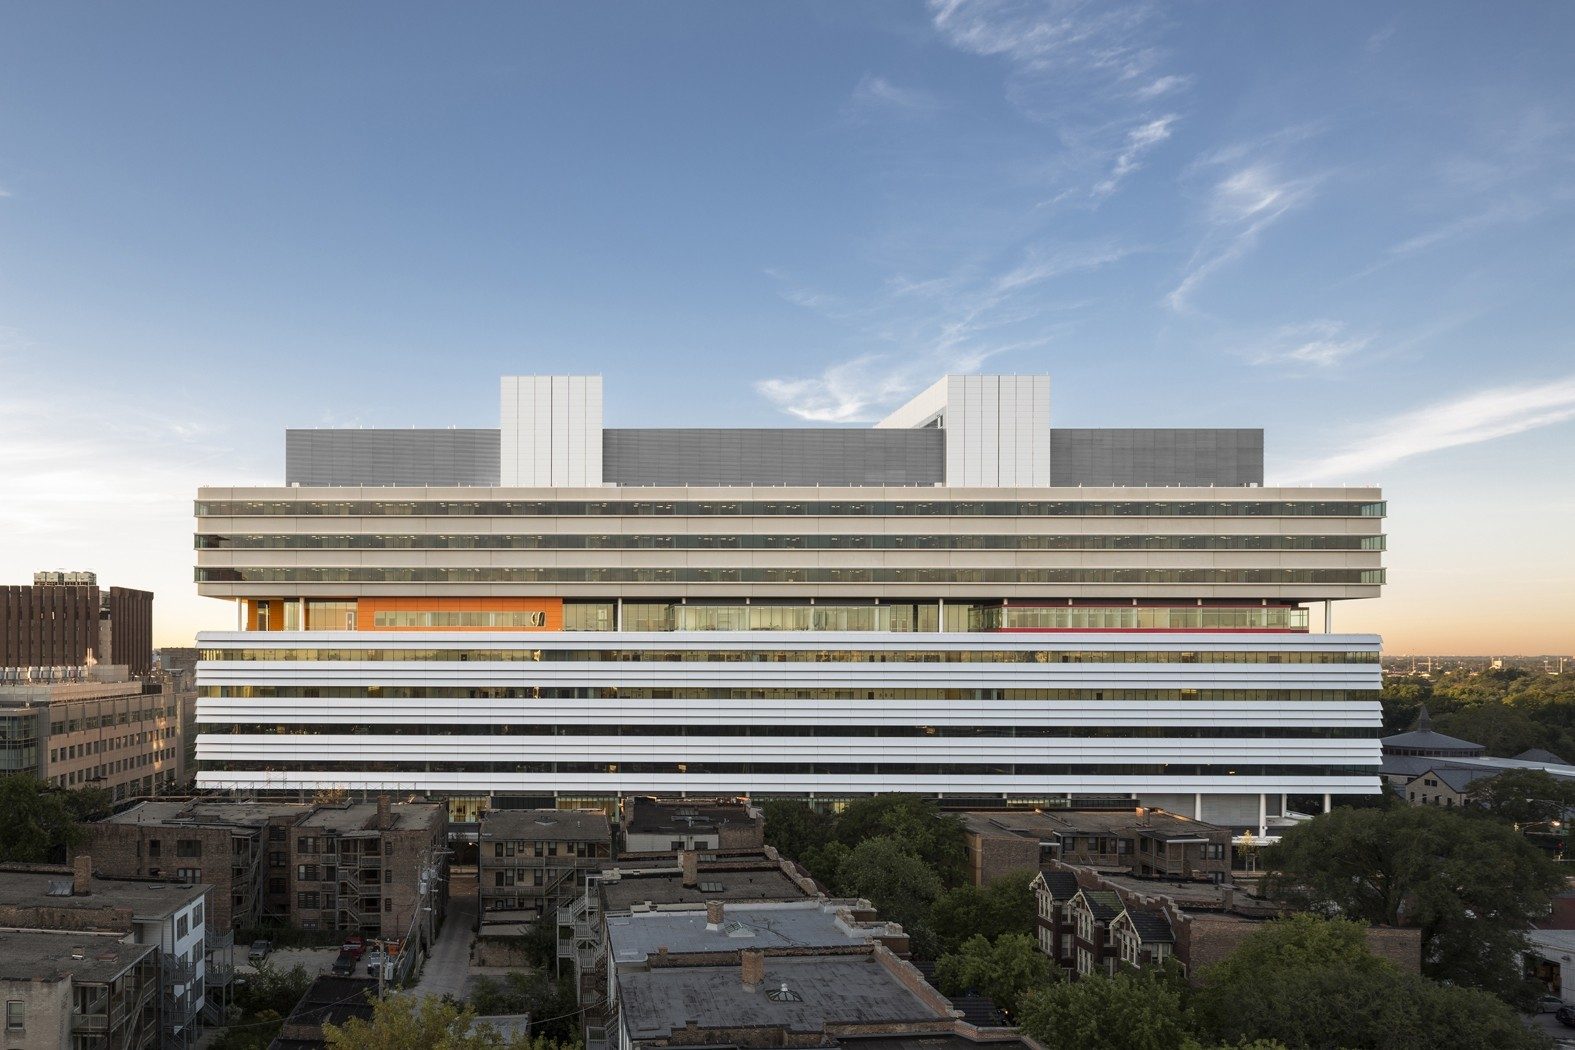 Center for Care and Discovery, University of Chicago Medicine / Rafael Viñoly Architects, © Tom Rossiter